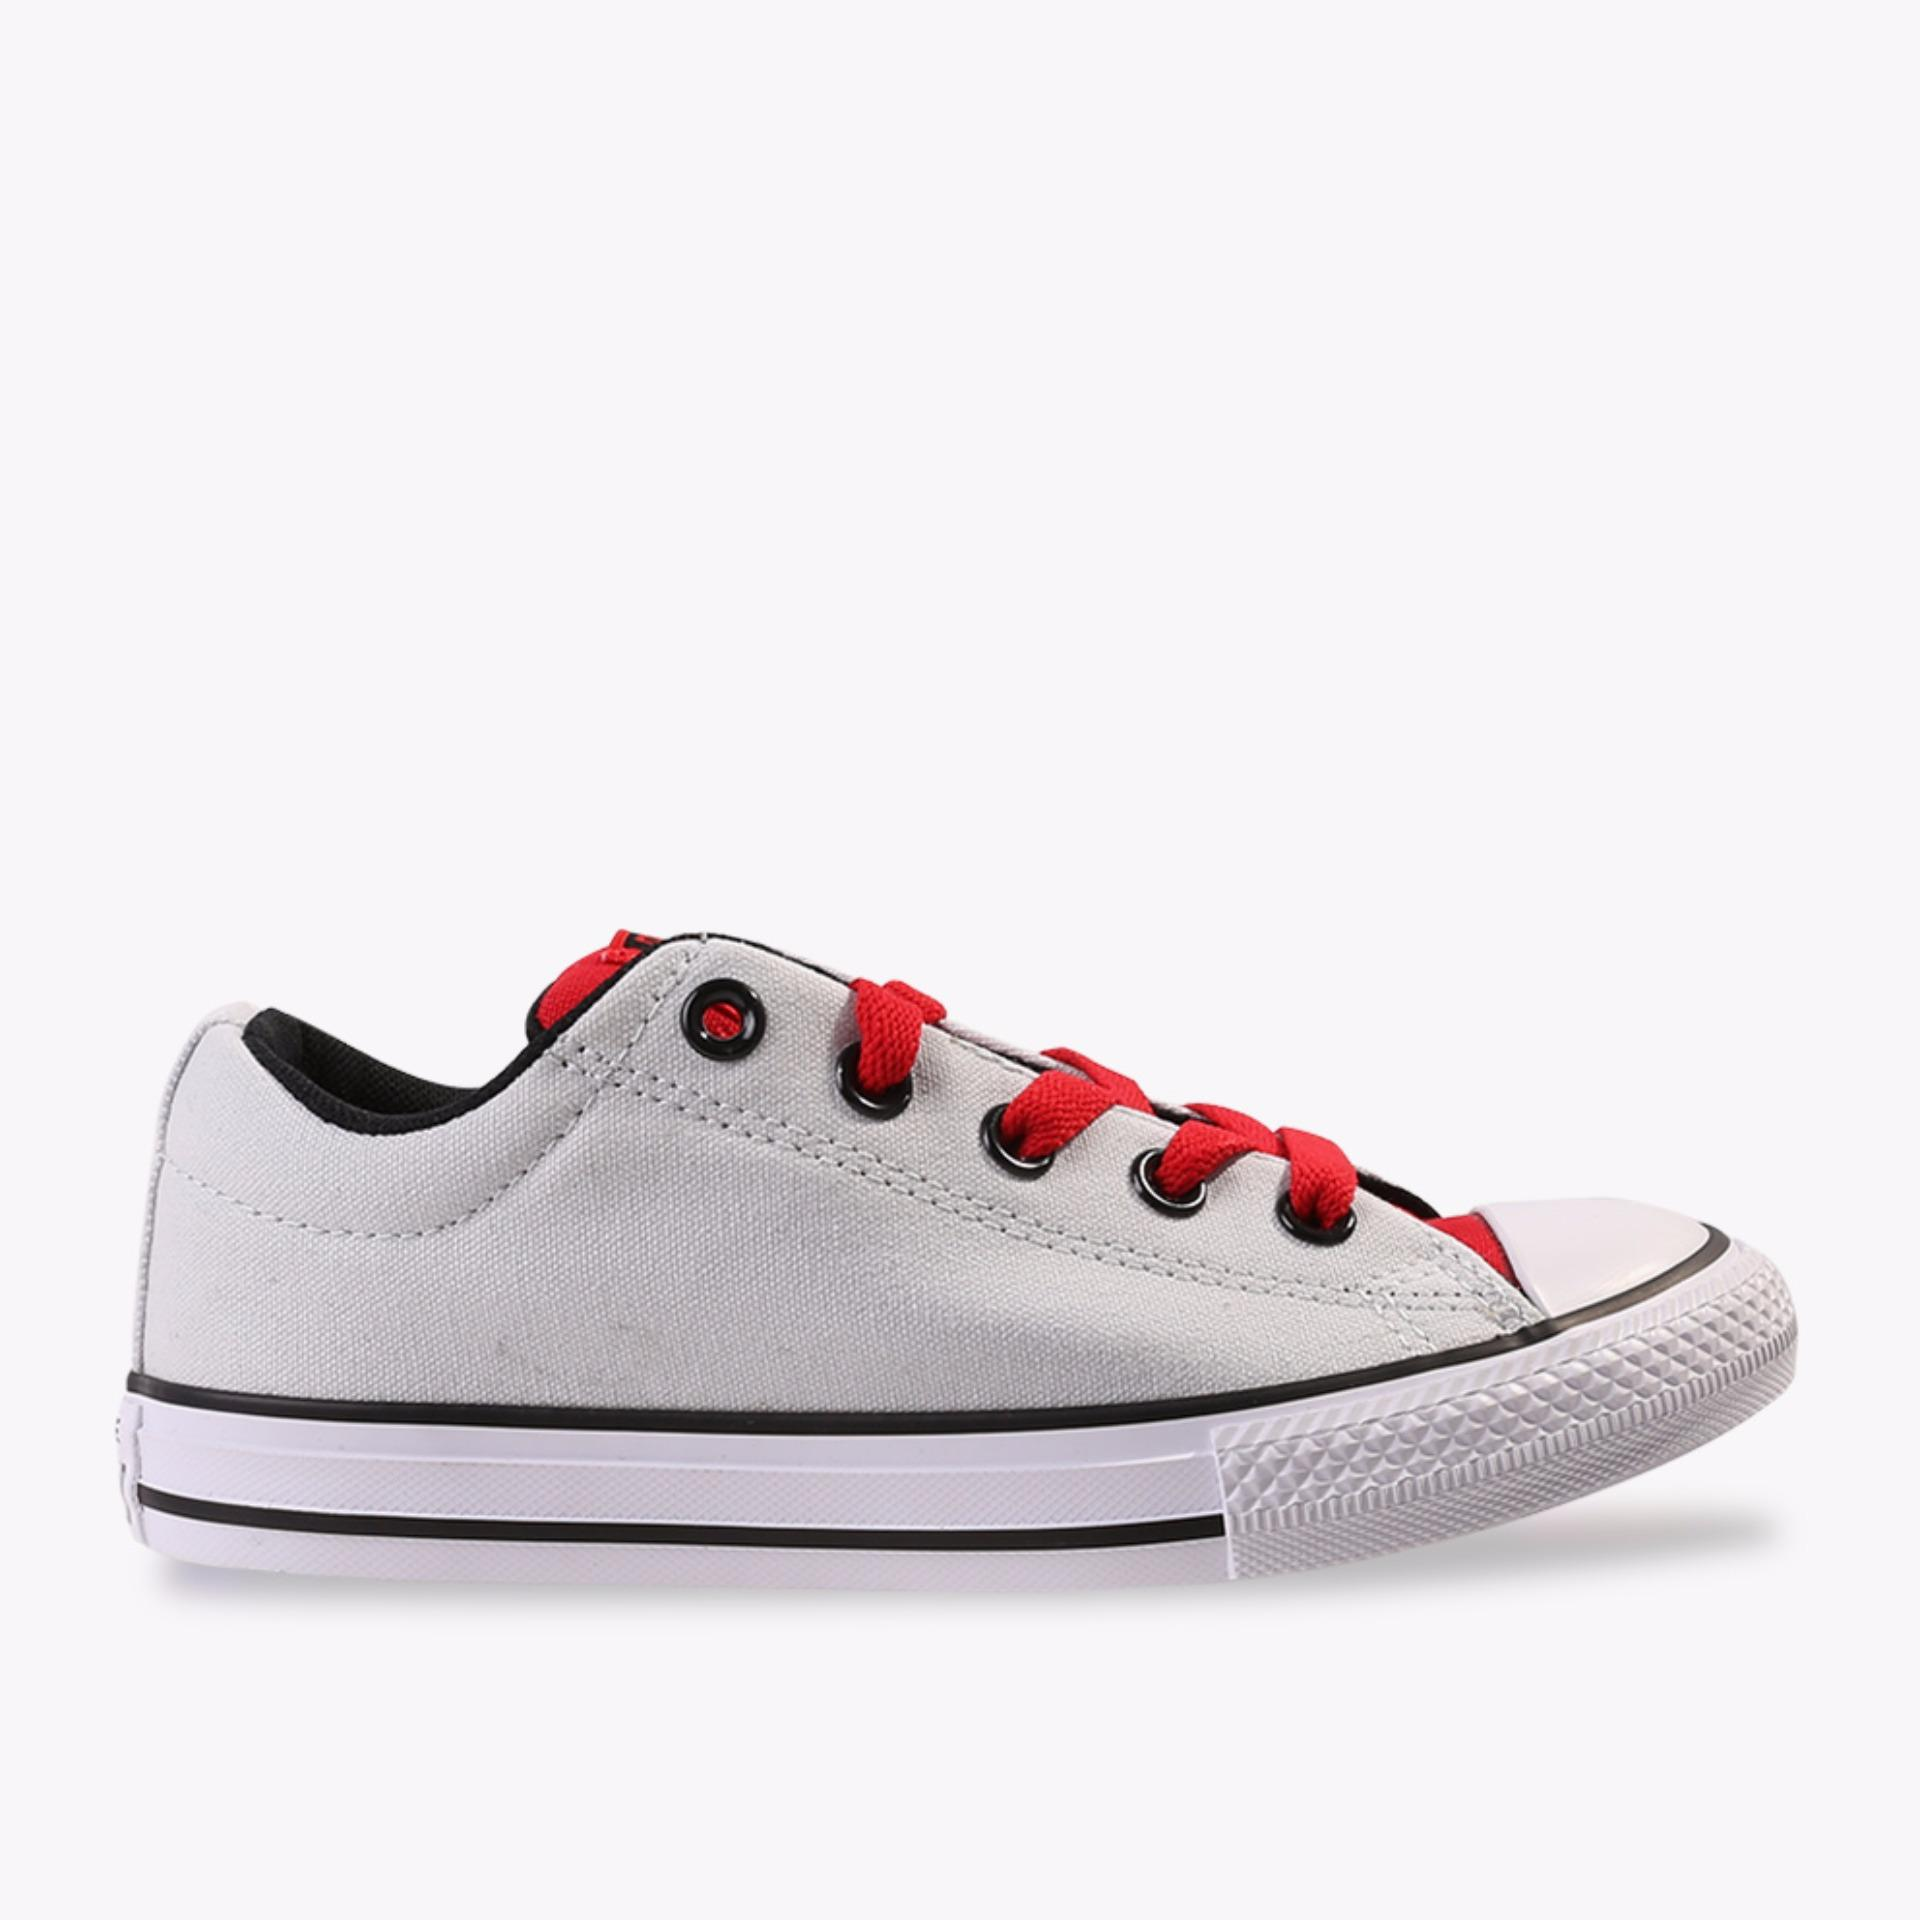 Converse Chuck Taylor All Star Street Slip Girl's Sneakers Shoes - Putih